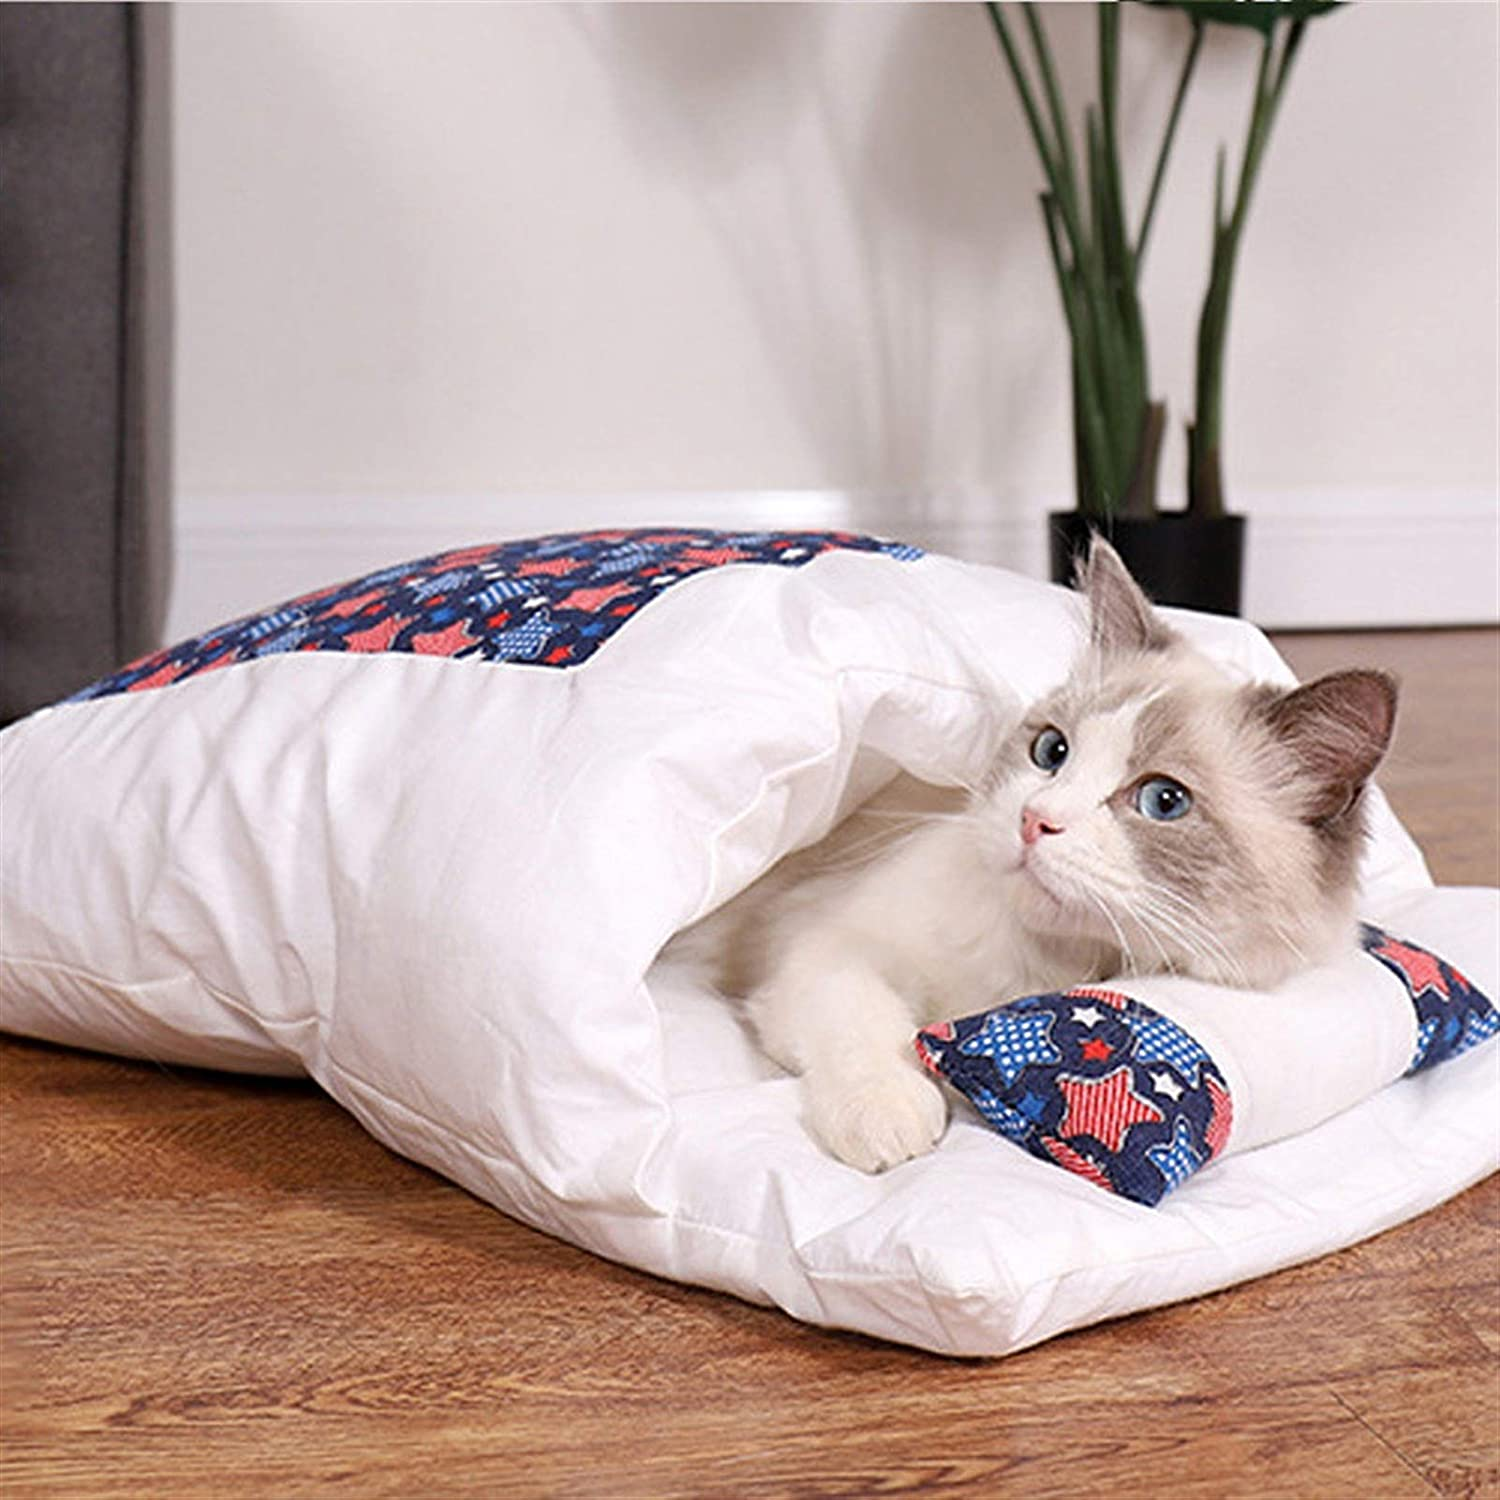 Pet Limited time sale Bed Cat Small Dog Nest Bag Winter Warm Sleeping Challenge the lowest price of Japan Keep